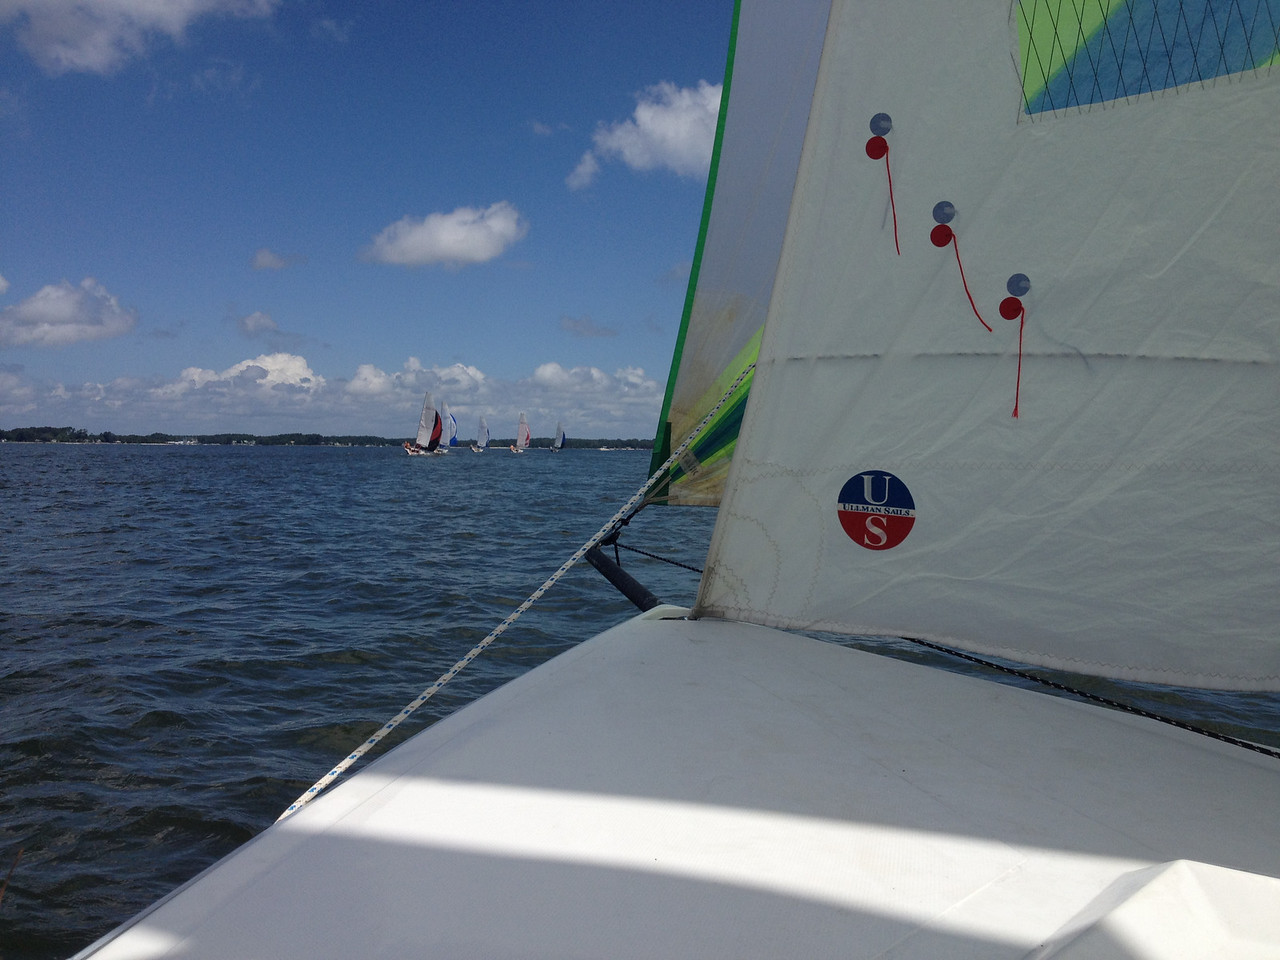 The fleet just ahead of us by the halfway point.